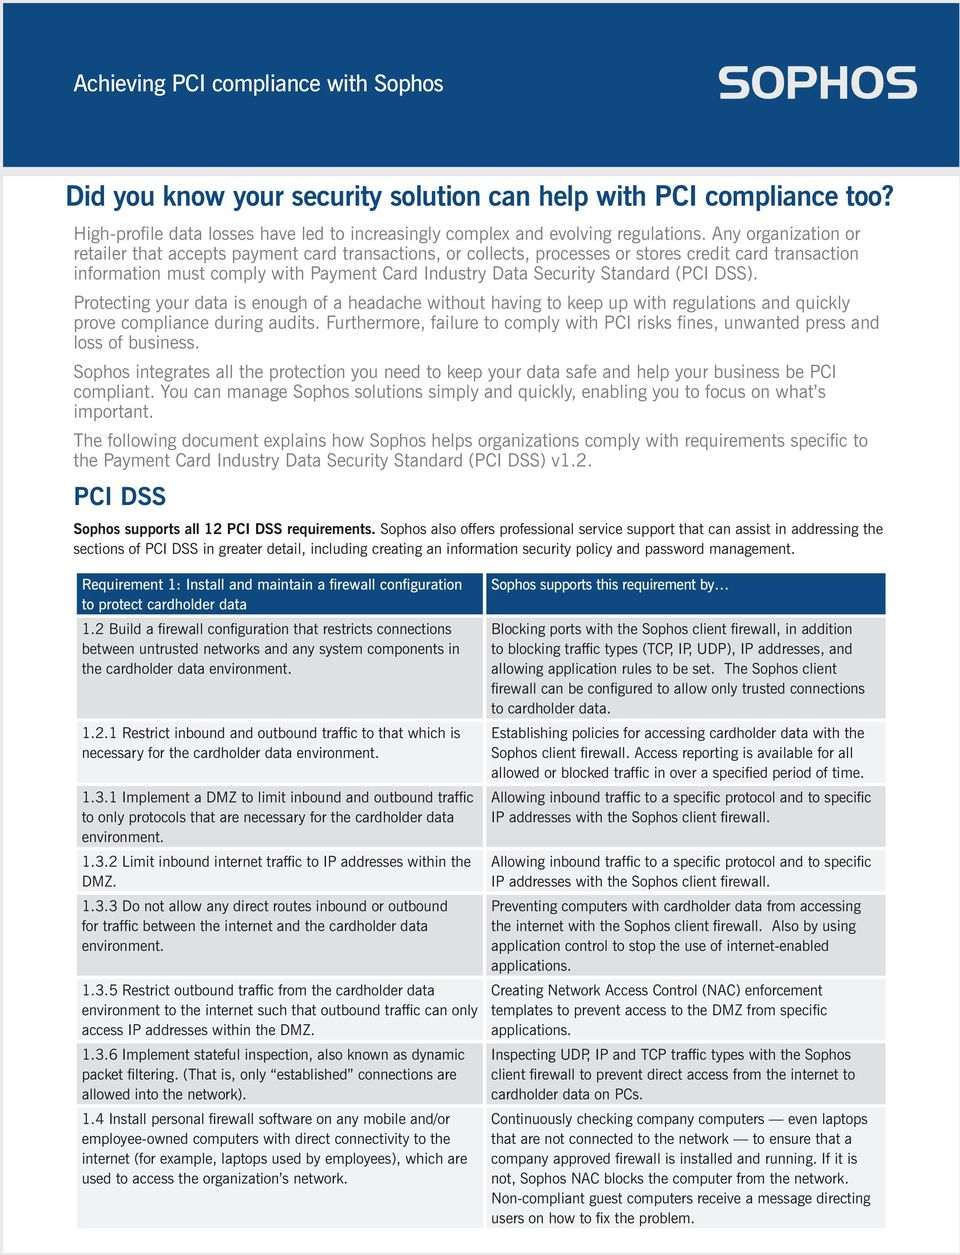 (PCI DSS). Protecting your data is enough of a headache without having to keep up with regulations and quickly prove compliance during audits.